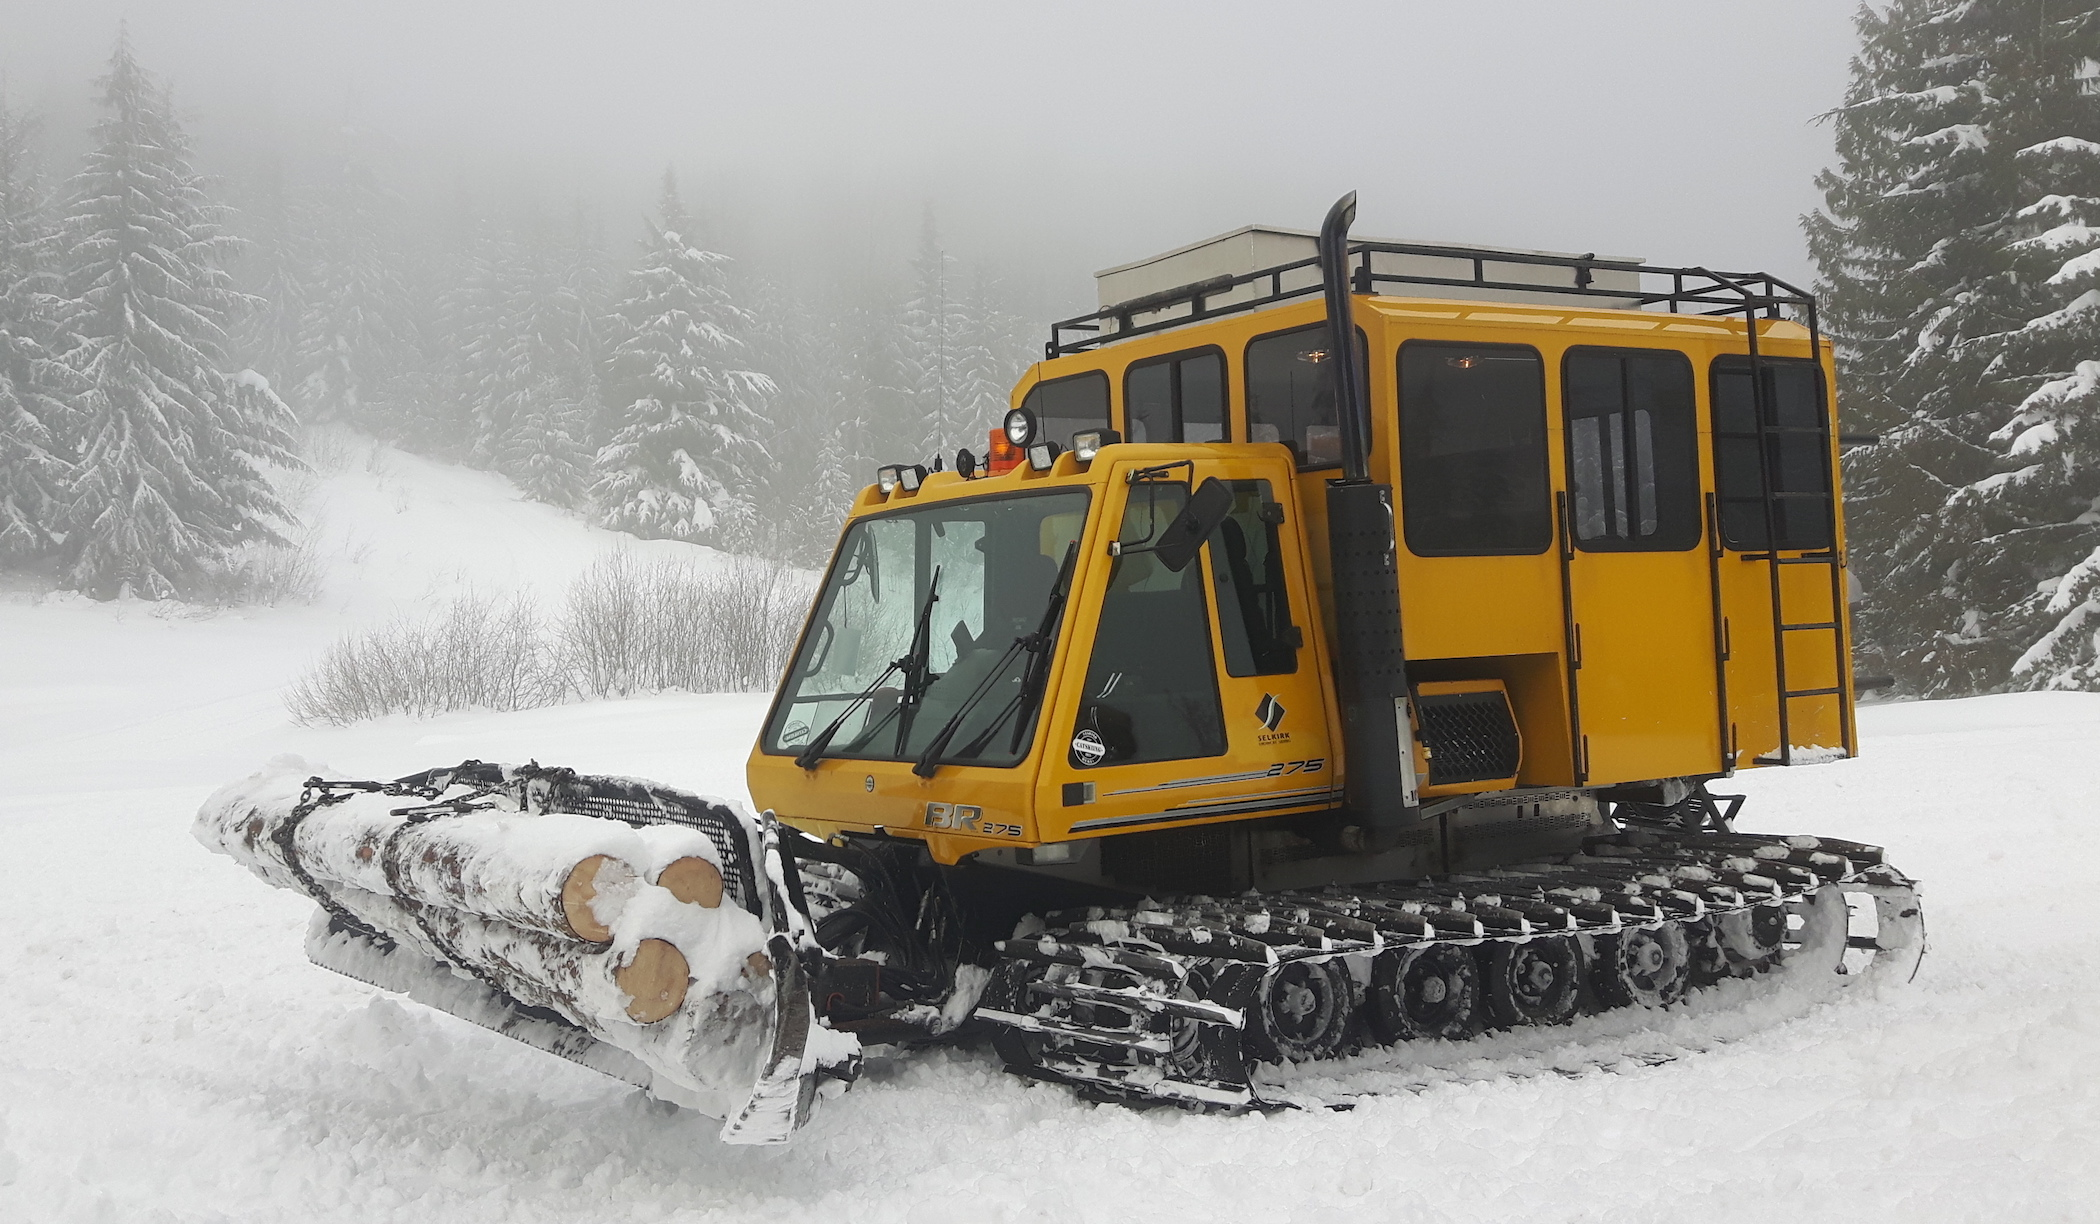 A snowcat is bringing firewood into a backcountry cabin, a good-faith move to help users share the backcountry.